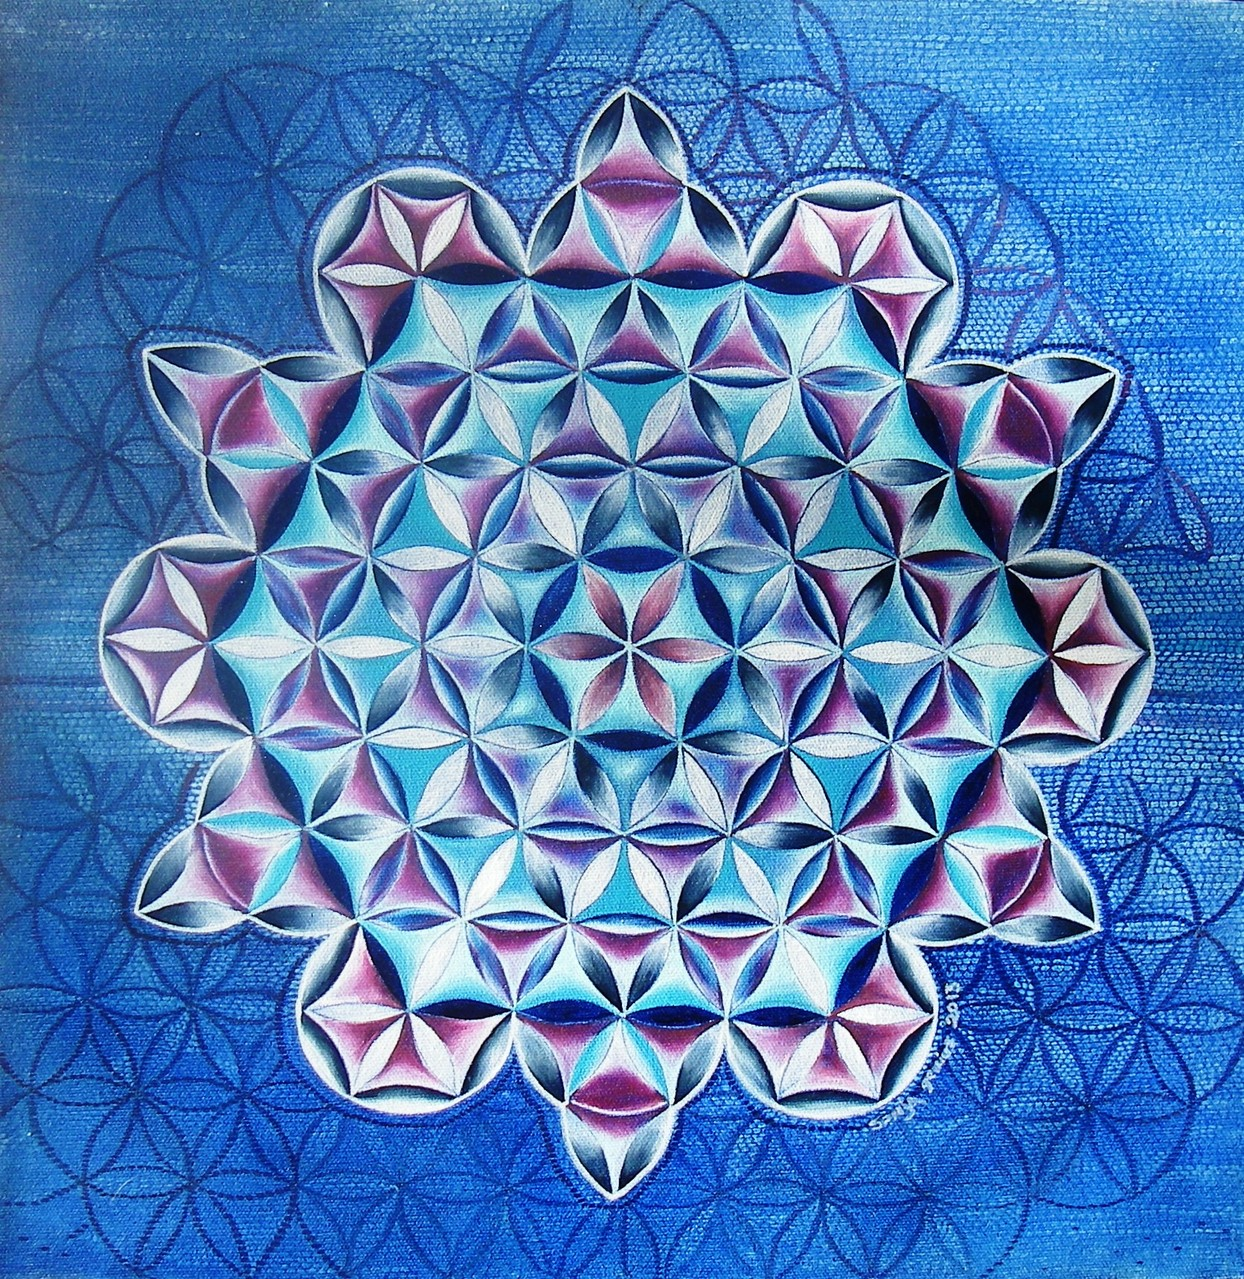 Untitled (Sacred Geometry), oil on canvas, 16x16, 2013